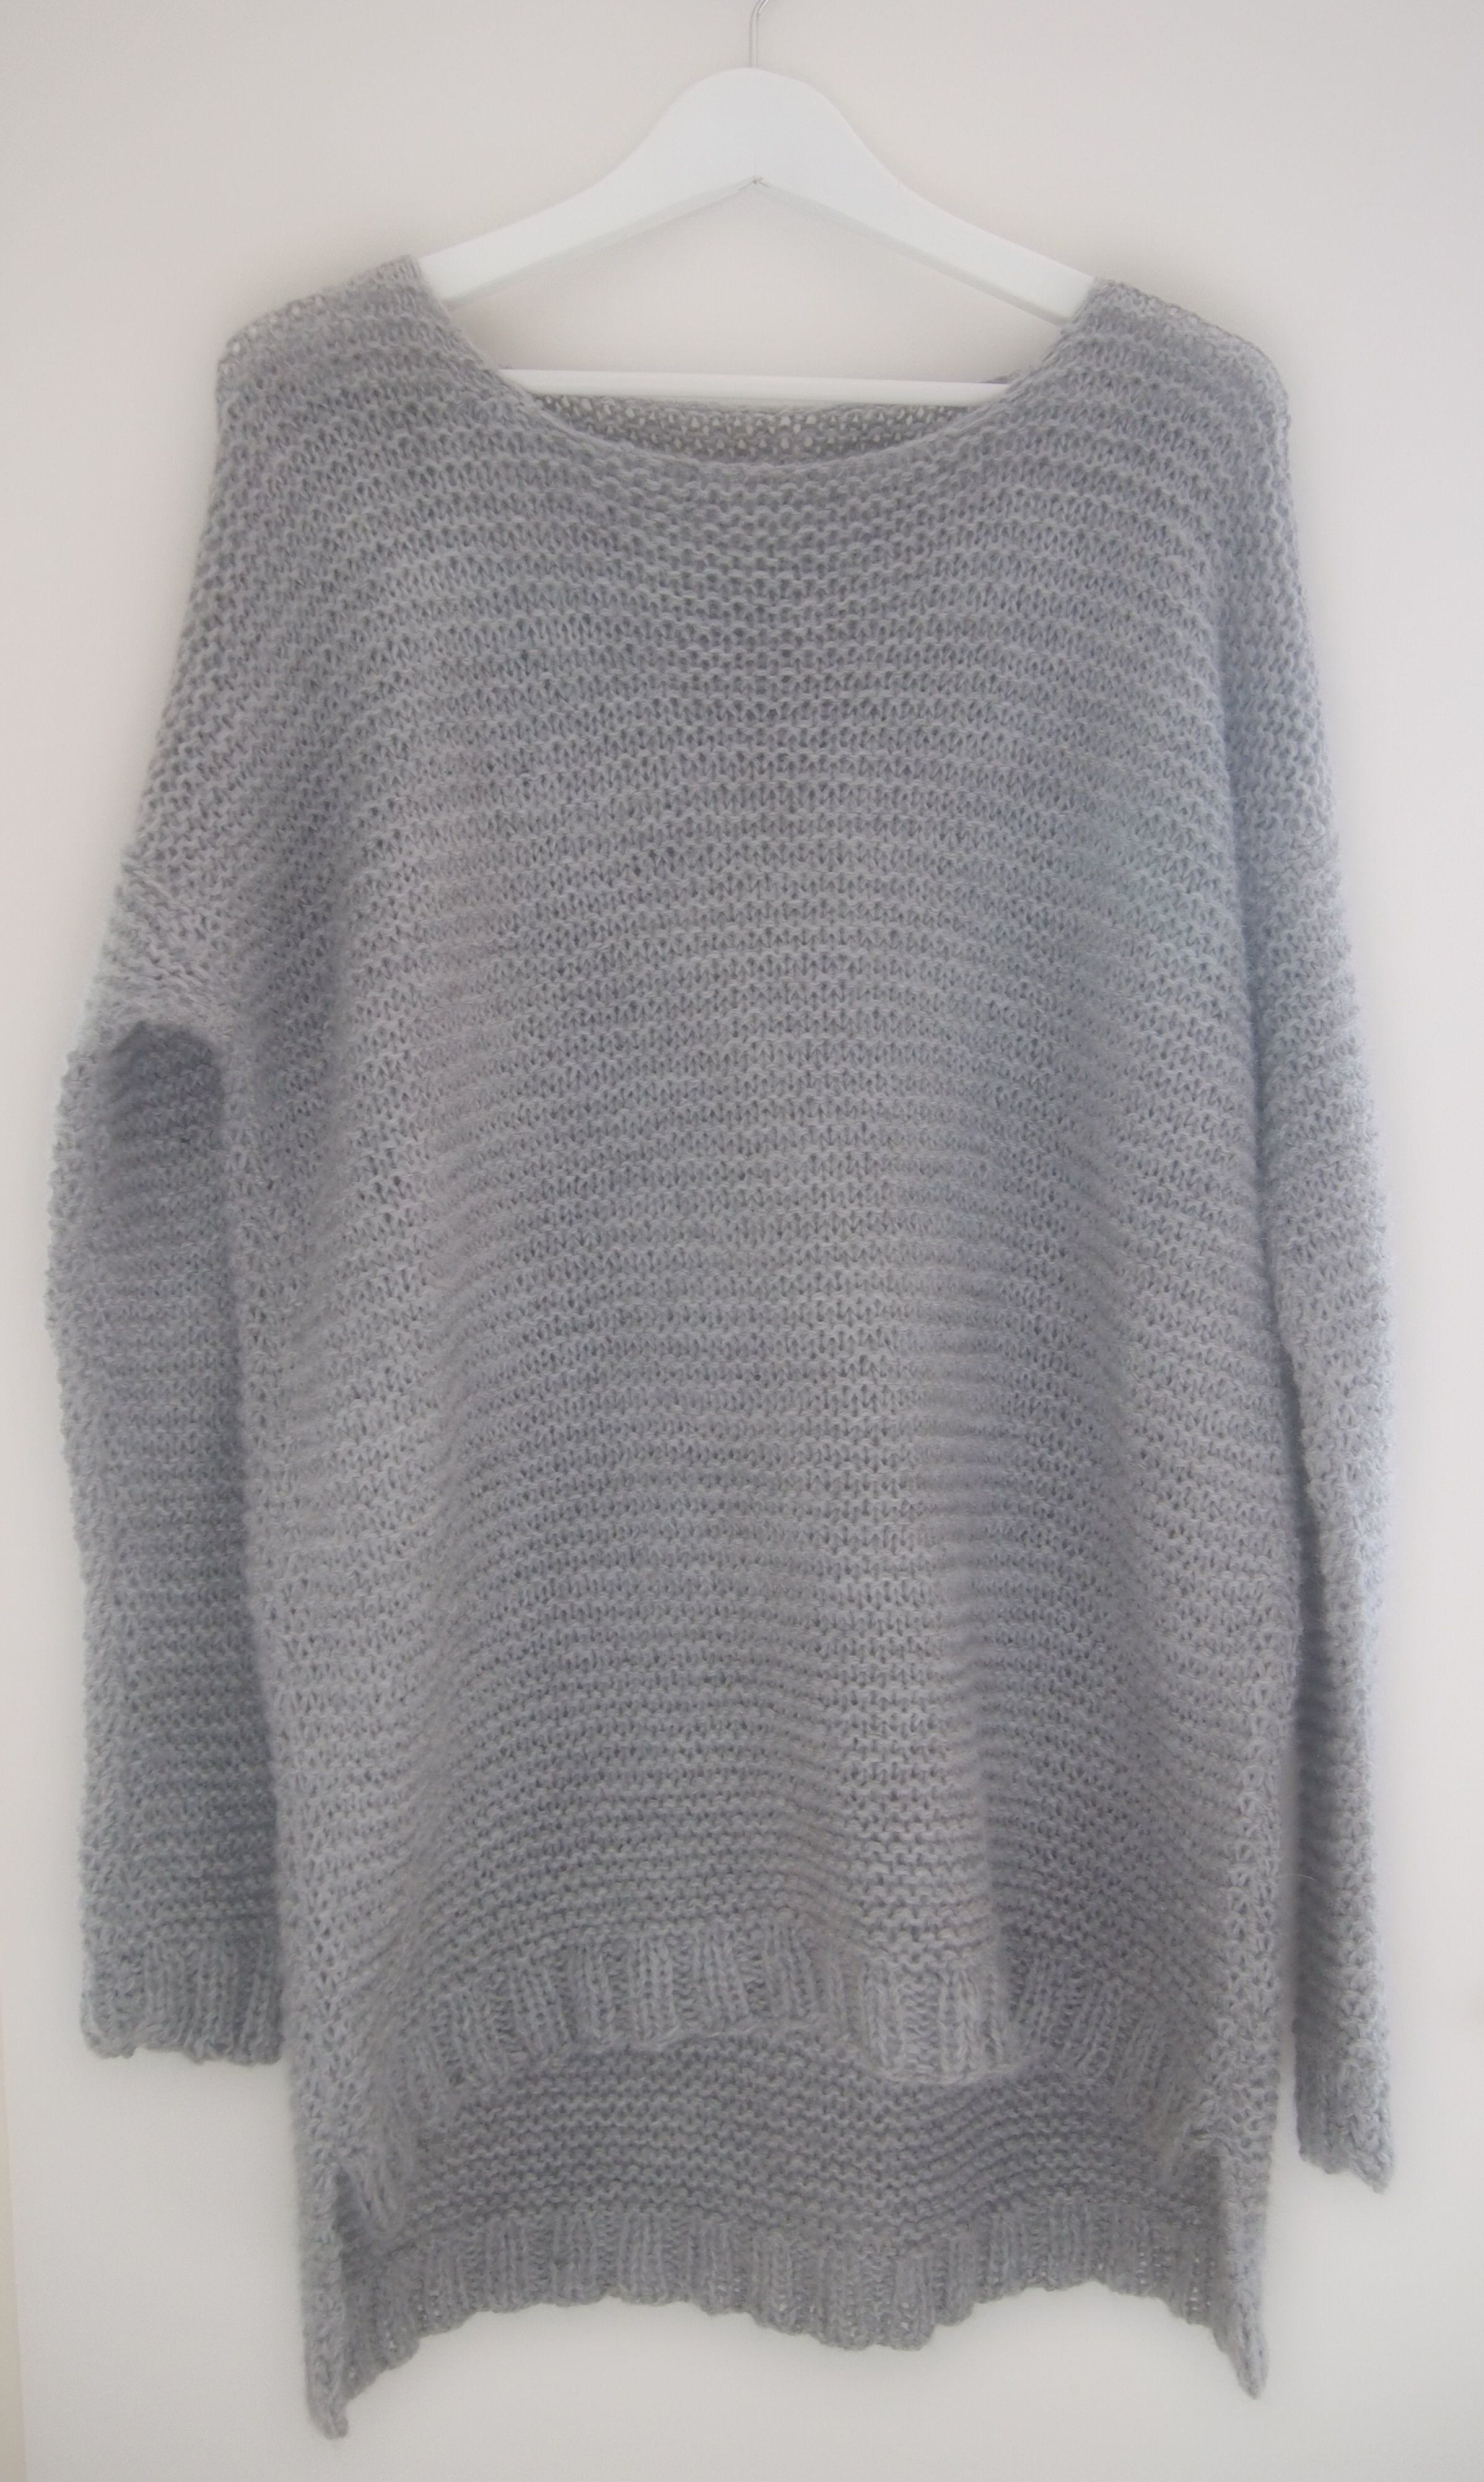 Dark Gray Hand Knit Sweater, Long Sleeved V Neck Pullover, Slouchy Sweater, Unisex Knitwear, Hippie Chic Boho Gifts, Casual Knitwear